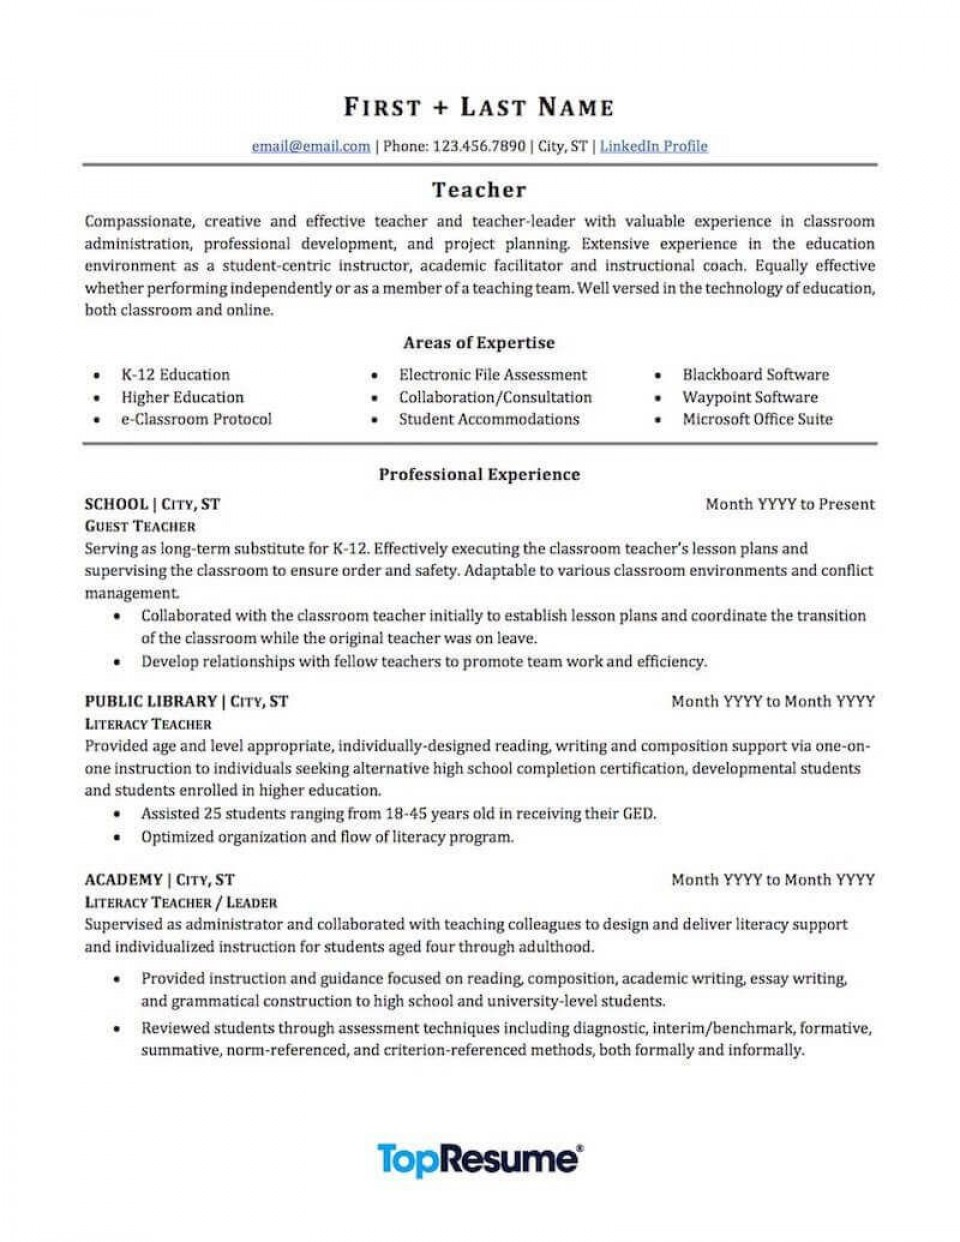 007 Top Resume Example For Teaching Job Concept  Sample Position In College Format960